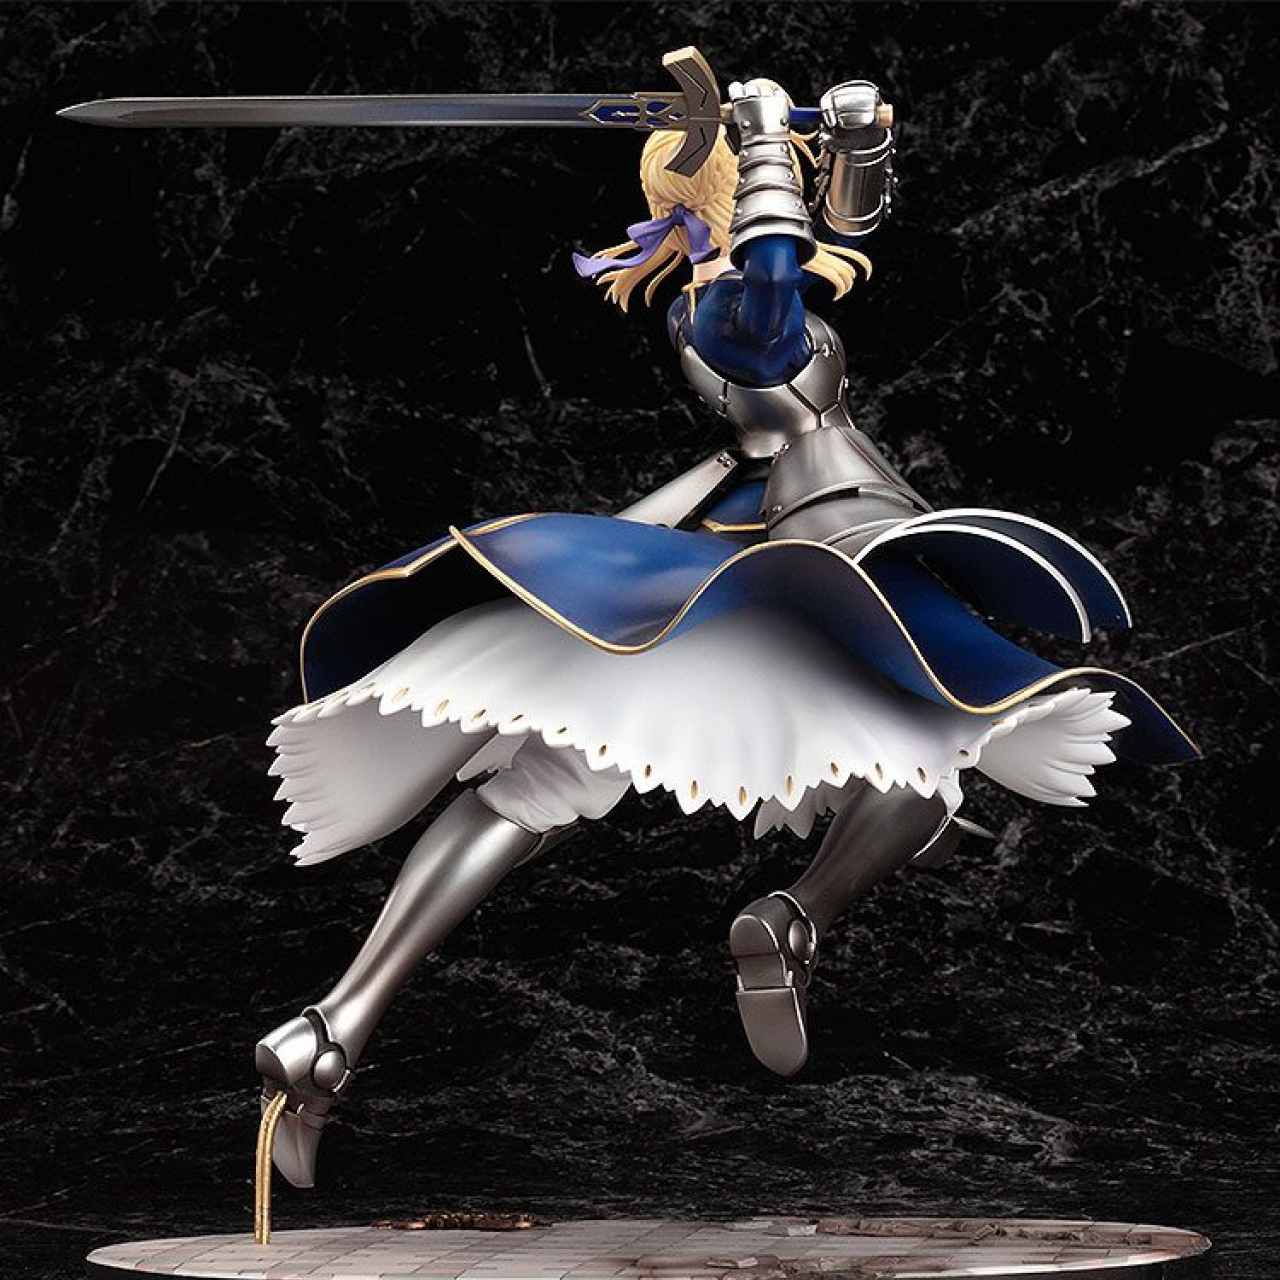 Fate/Stay Night Statue 1/7 Saber Triumphant Excalibur 25 cm